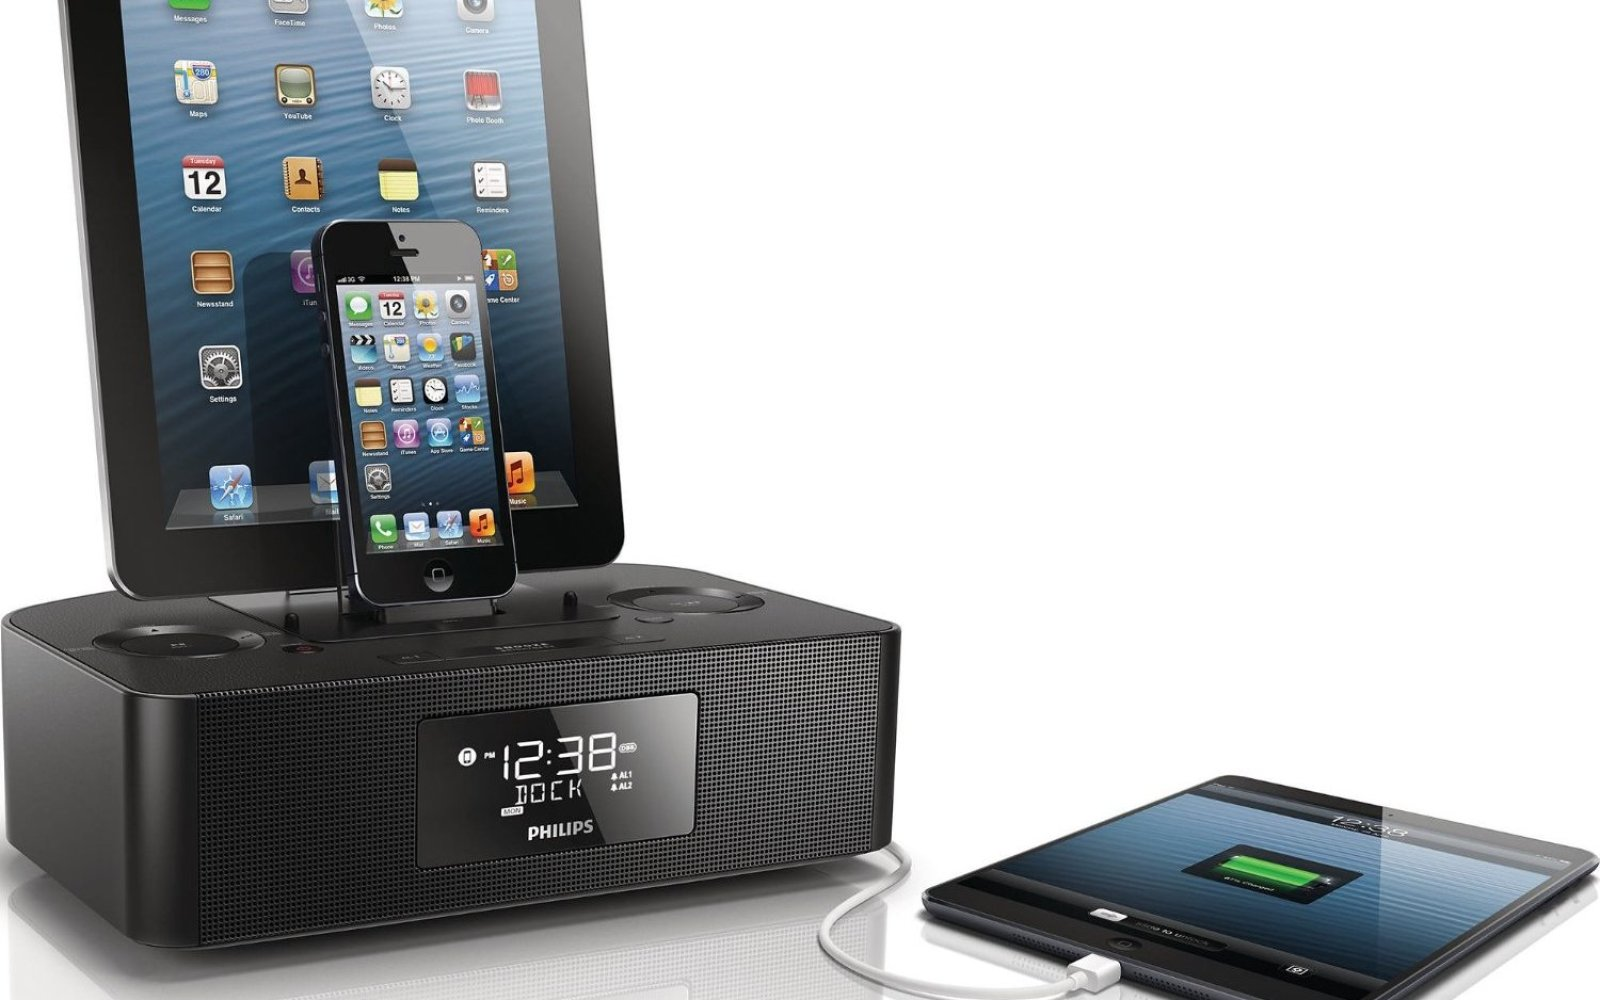 Quick Review: Philips AJ7260D/37 Dual Dock Triple Charging Clock Radio charges every iOS device